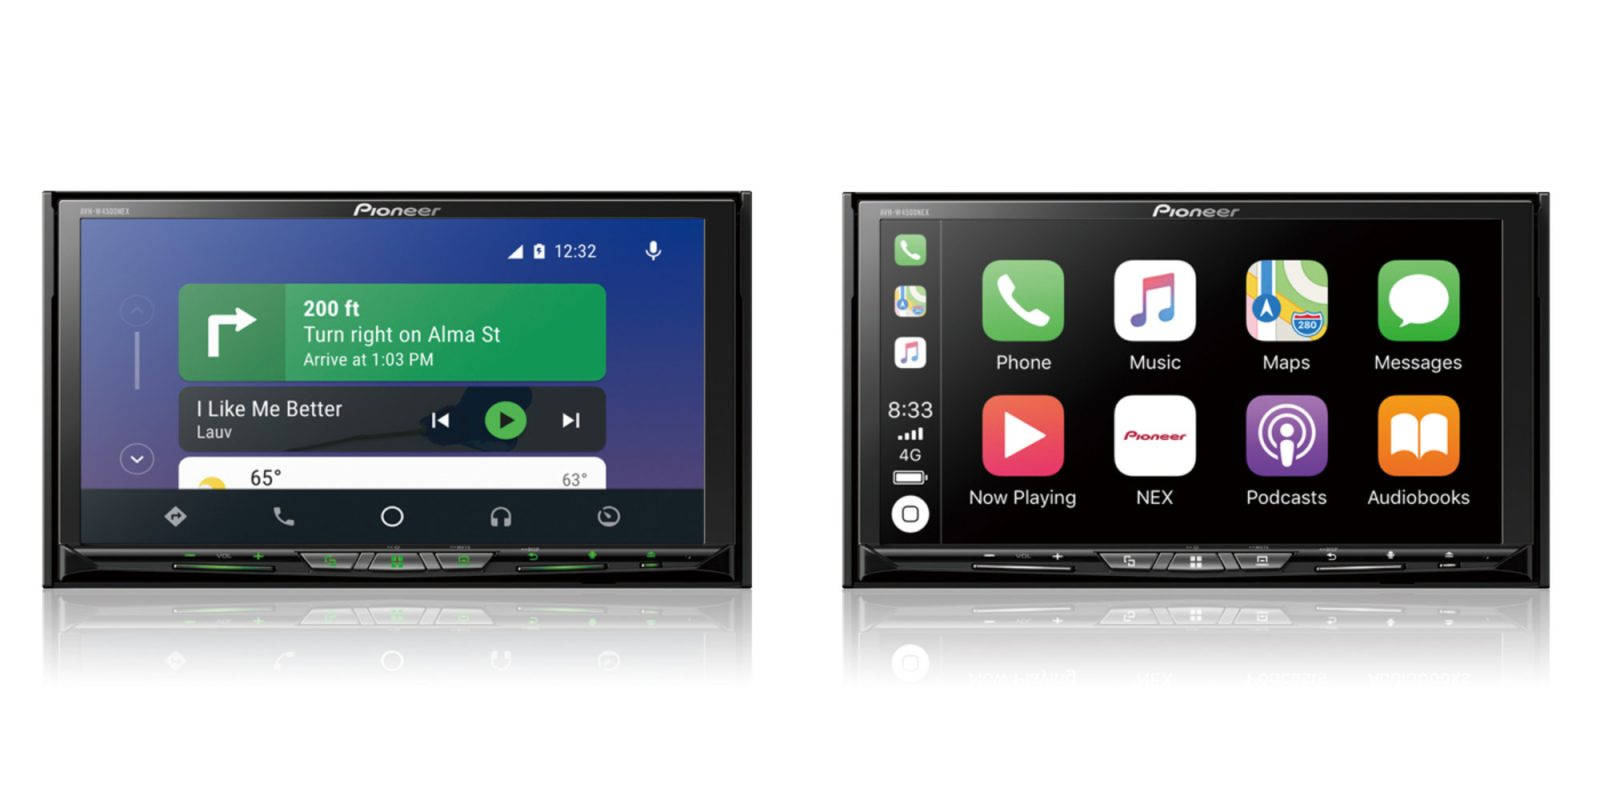 Pioneer Android Auto Not Working